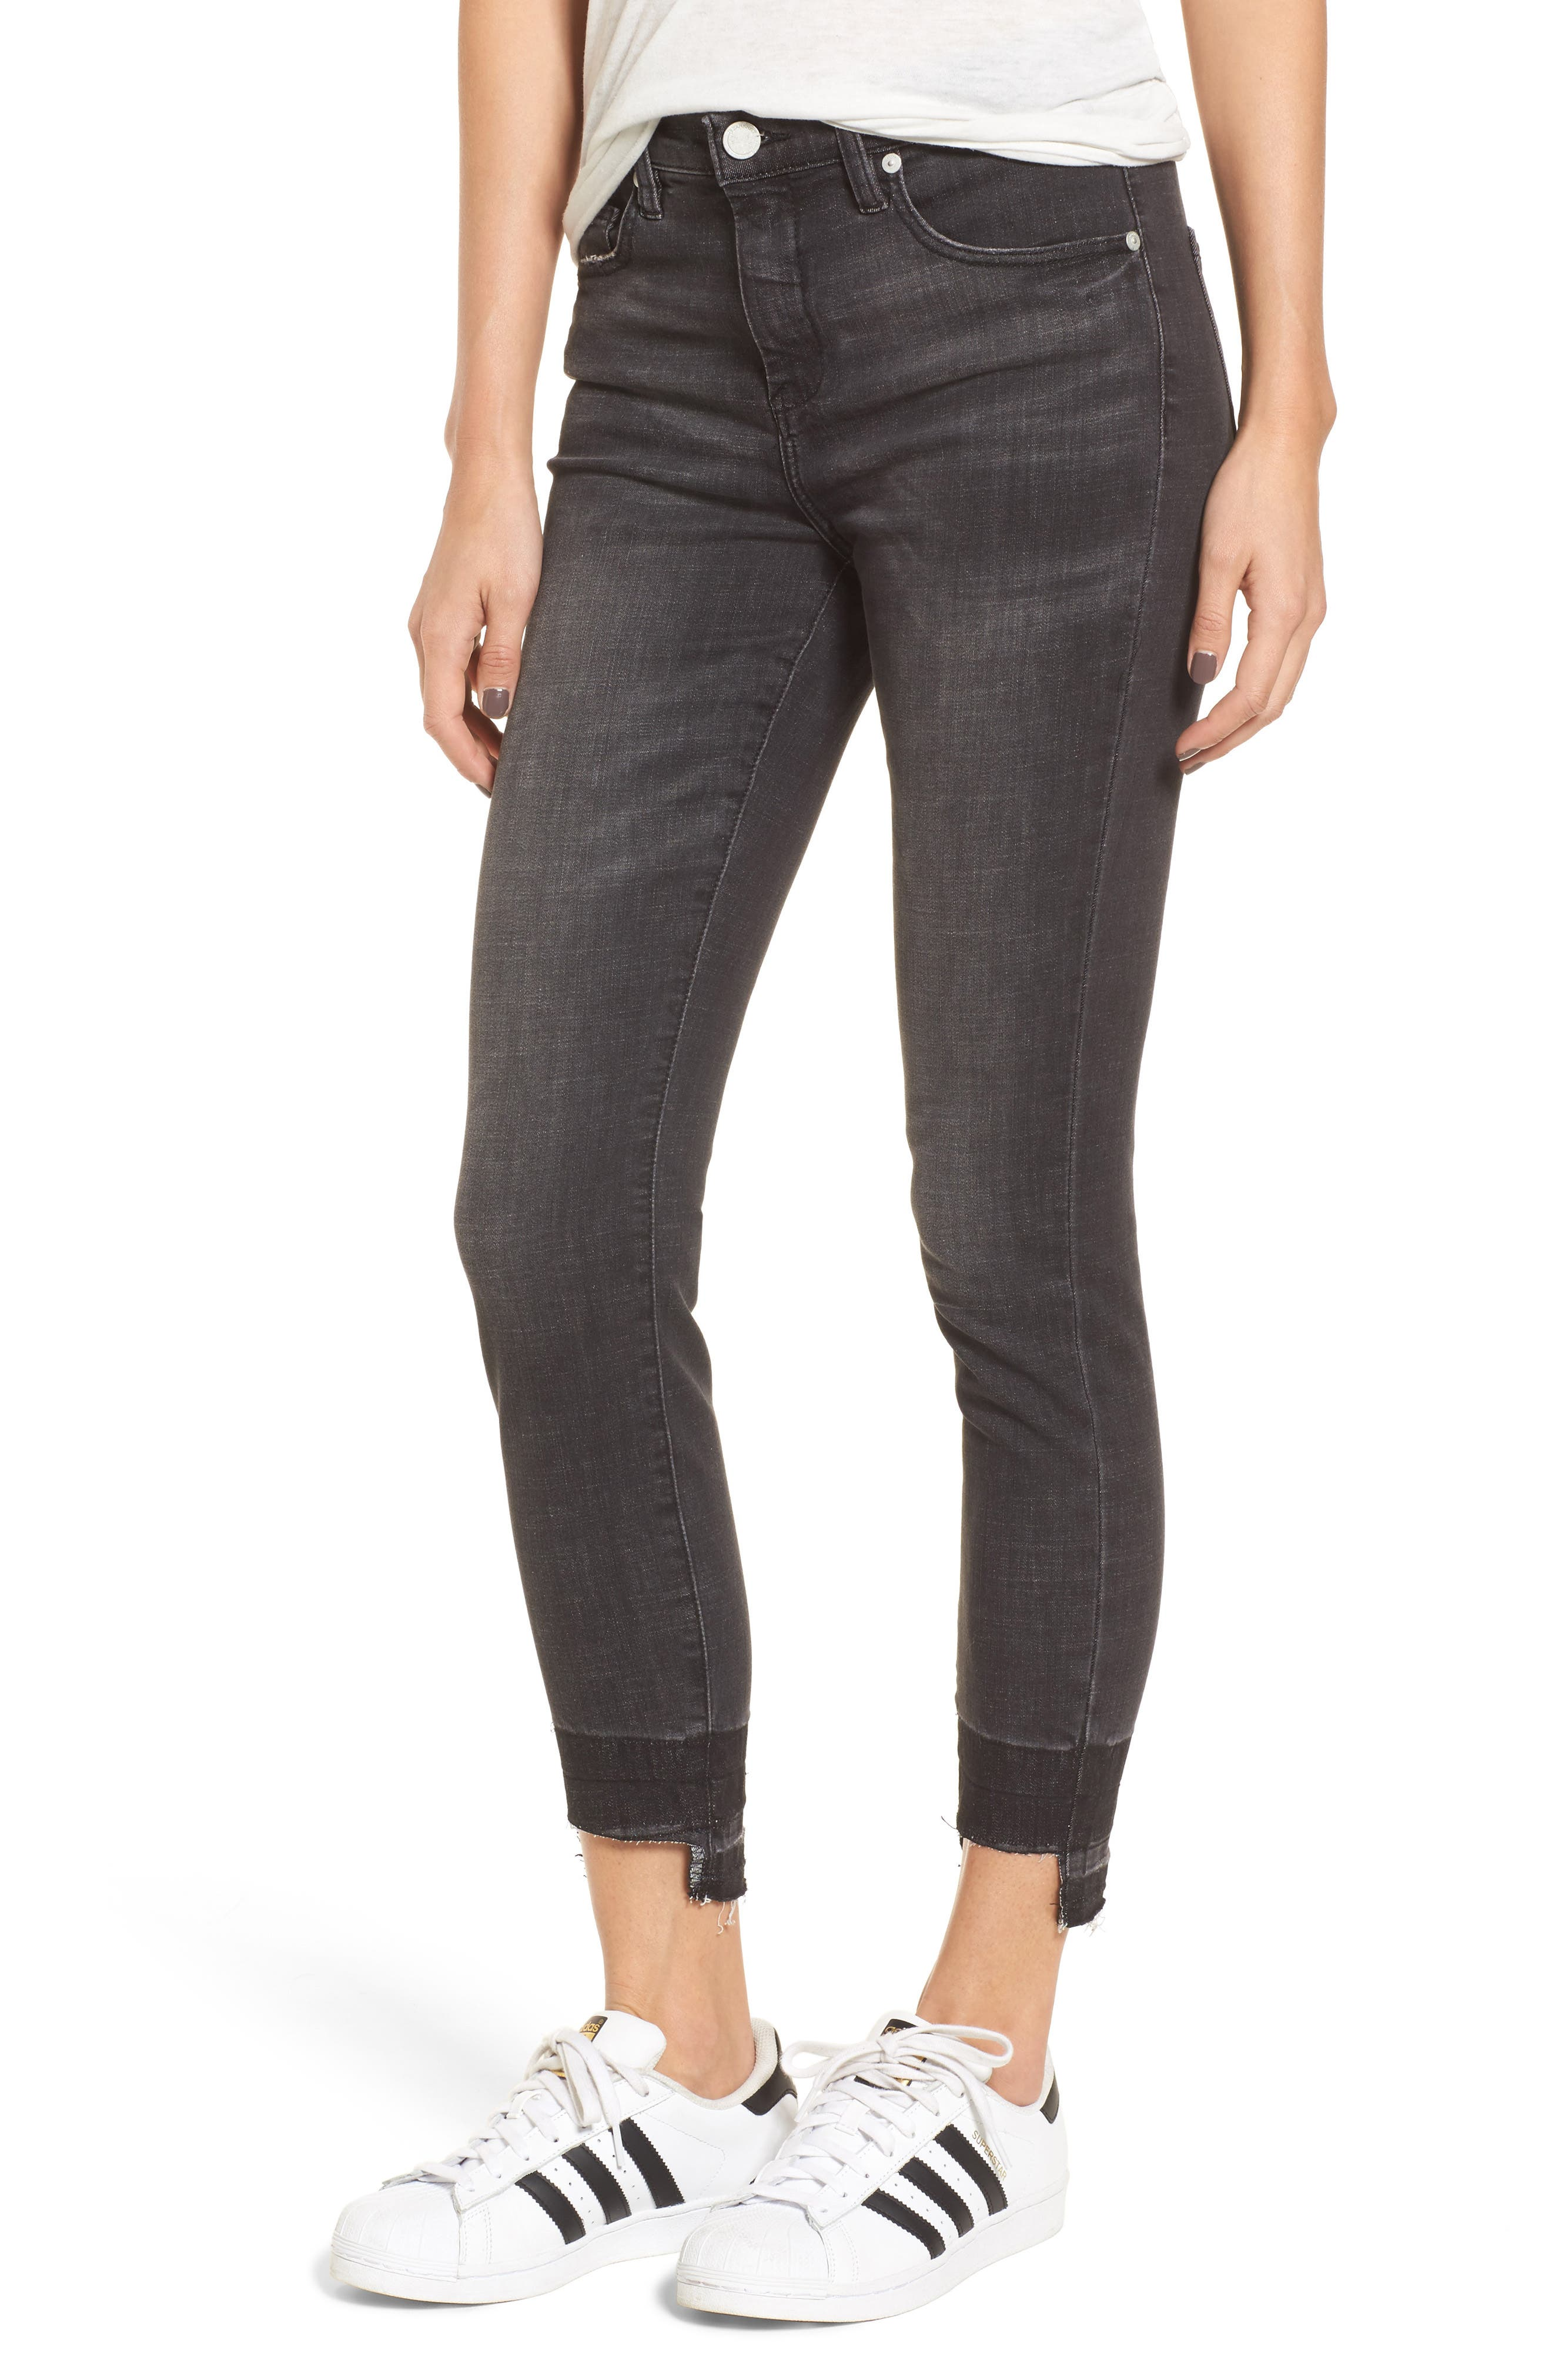 Alternate Image 1 Selected - BLANKNYC Cry Baby Release Hem Skinny Jeans (Shade Parade)